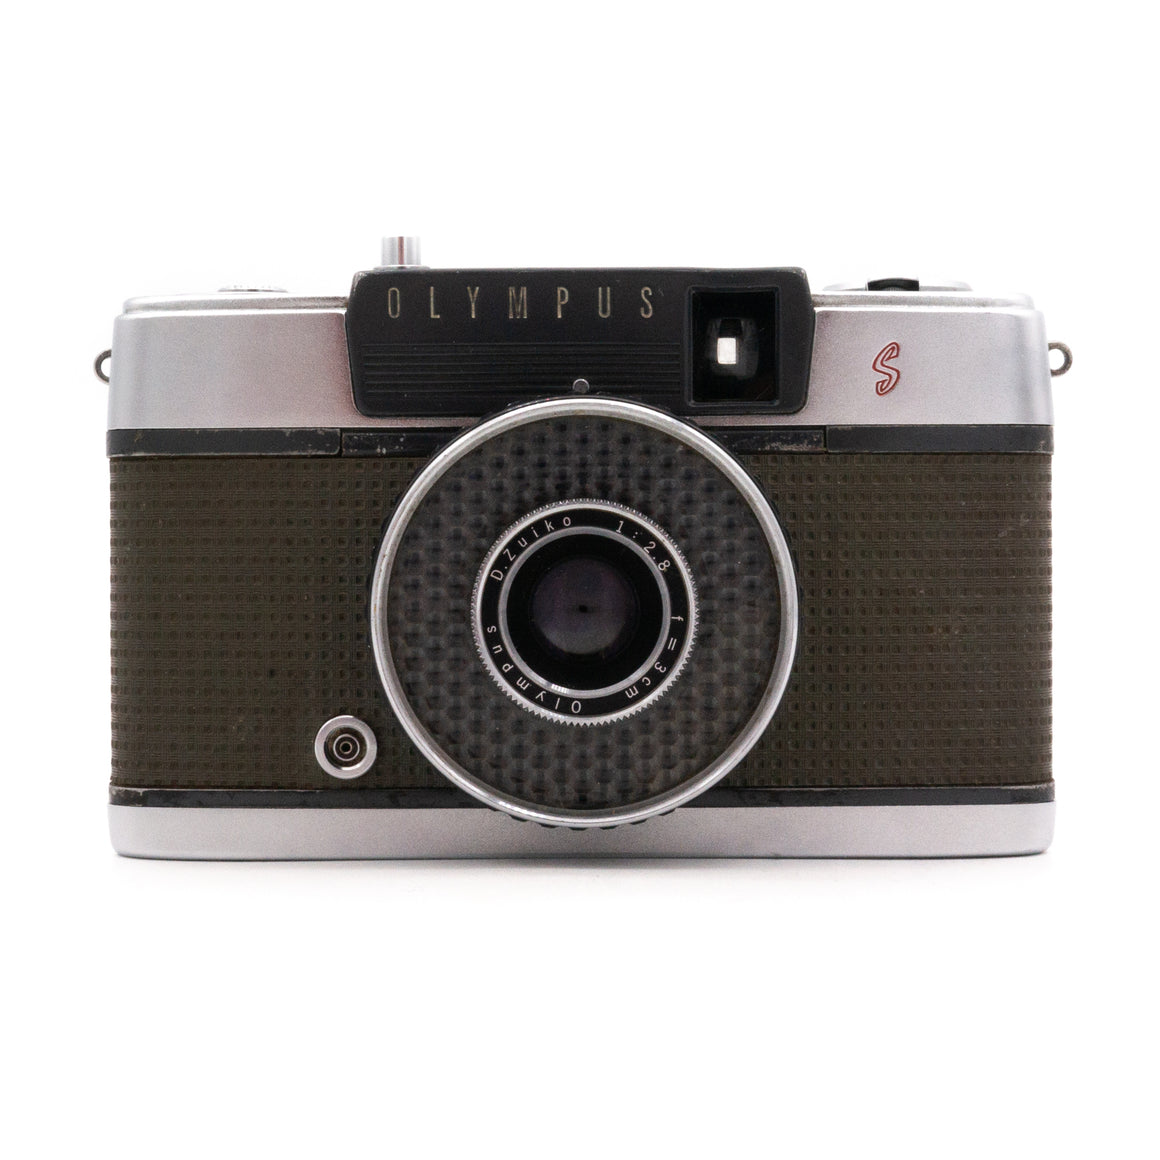 Olympus Pen-EE S Point & Shoot (Zone Focus) Camera with 30mm f/2.8 D. Zuiko Lens